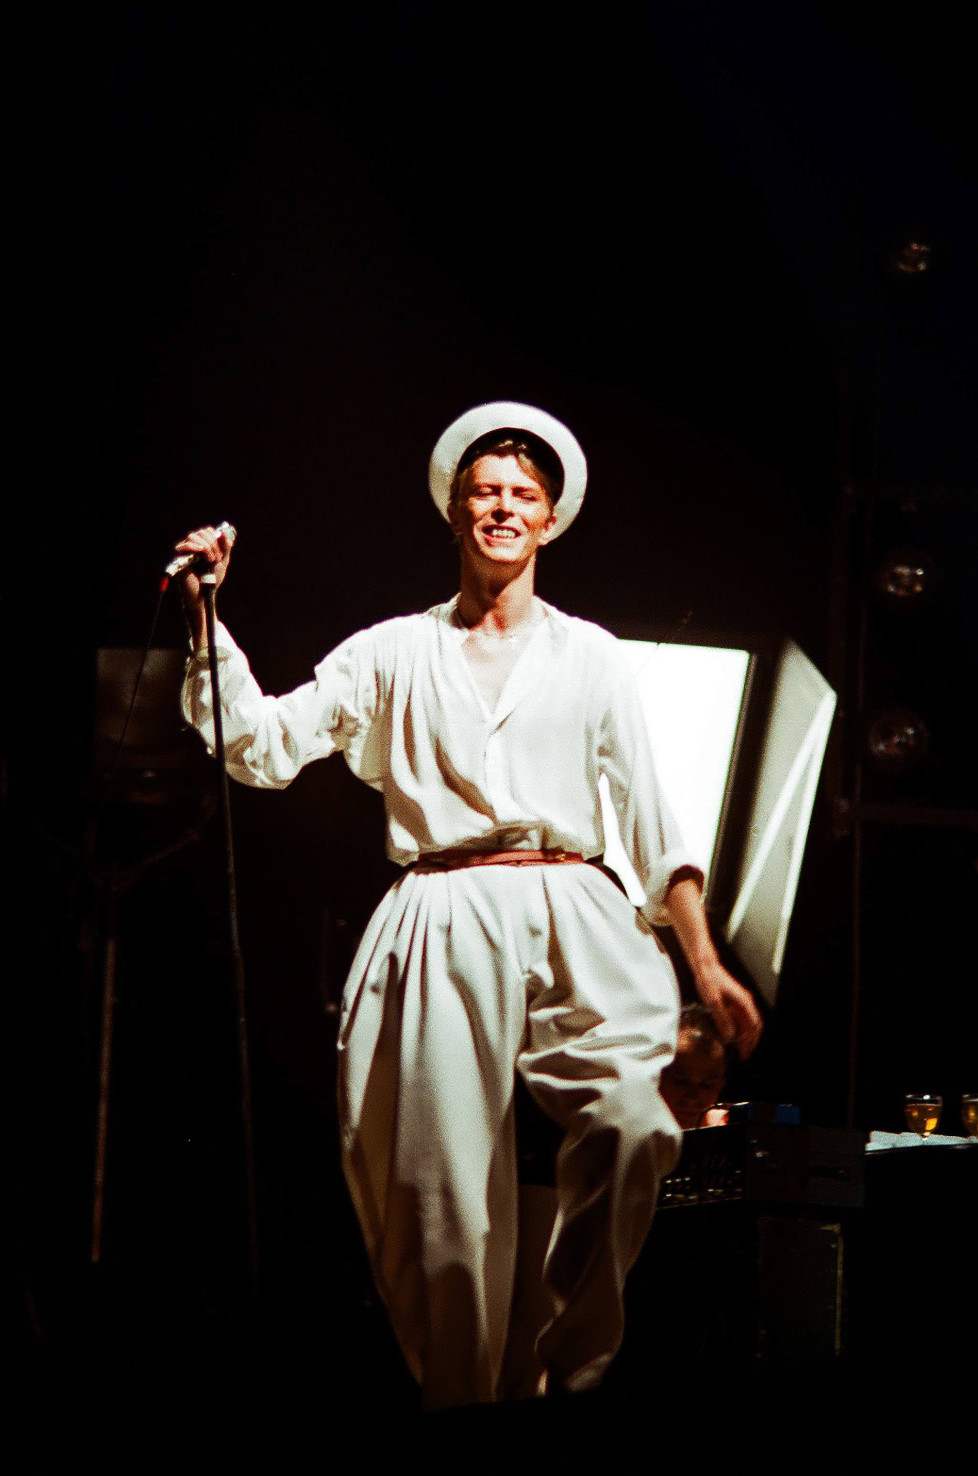 LONDON, UNITED KINGDOM - AUGUST 28: David Bowie performs on stage at Earls Court Arena on August 28th, 1978 in London, England. (Photo by Peter Still/Redferns)